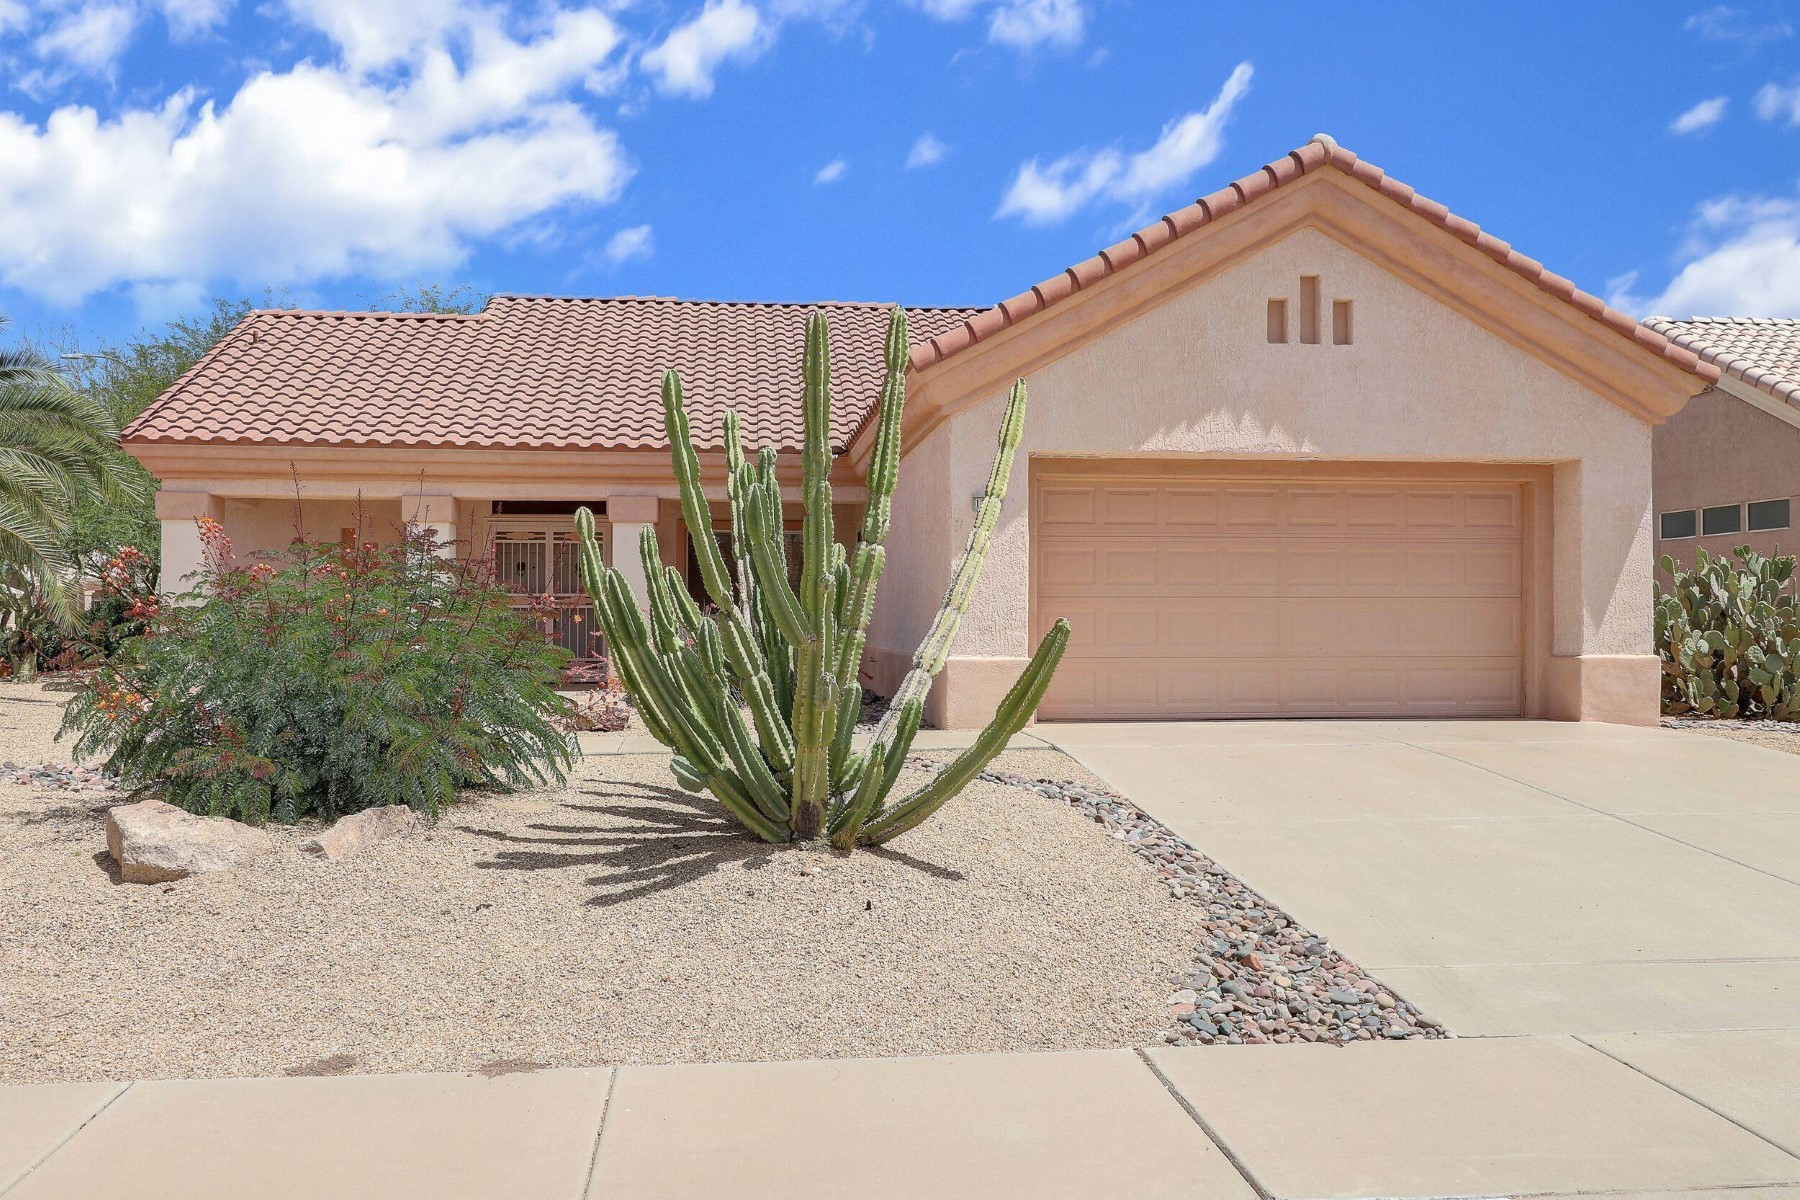 single family homes for Active at Sun City West 16046 W SENTINEL DR Sun City West, Arizona 85375 United States